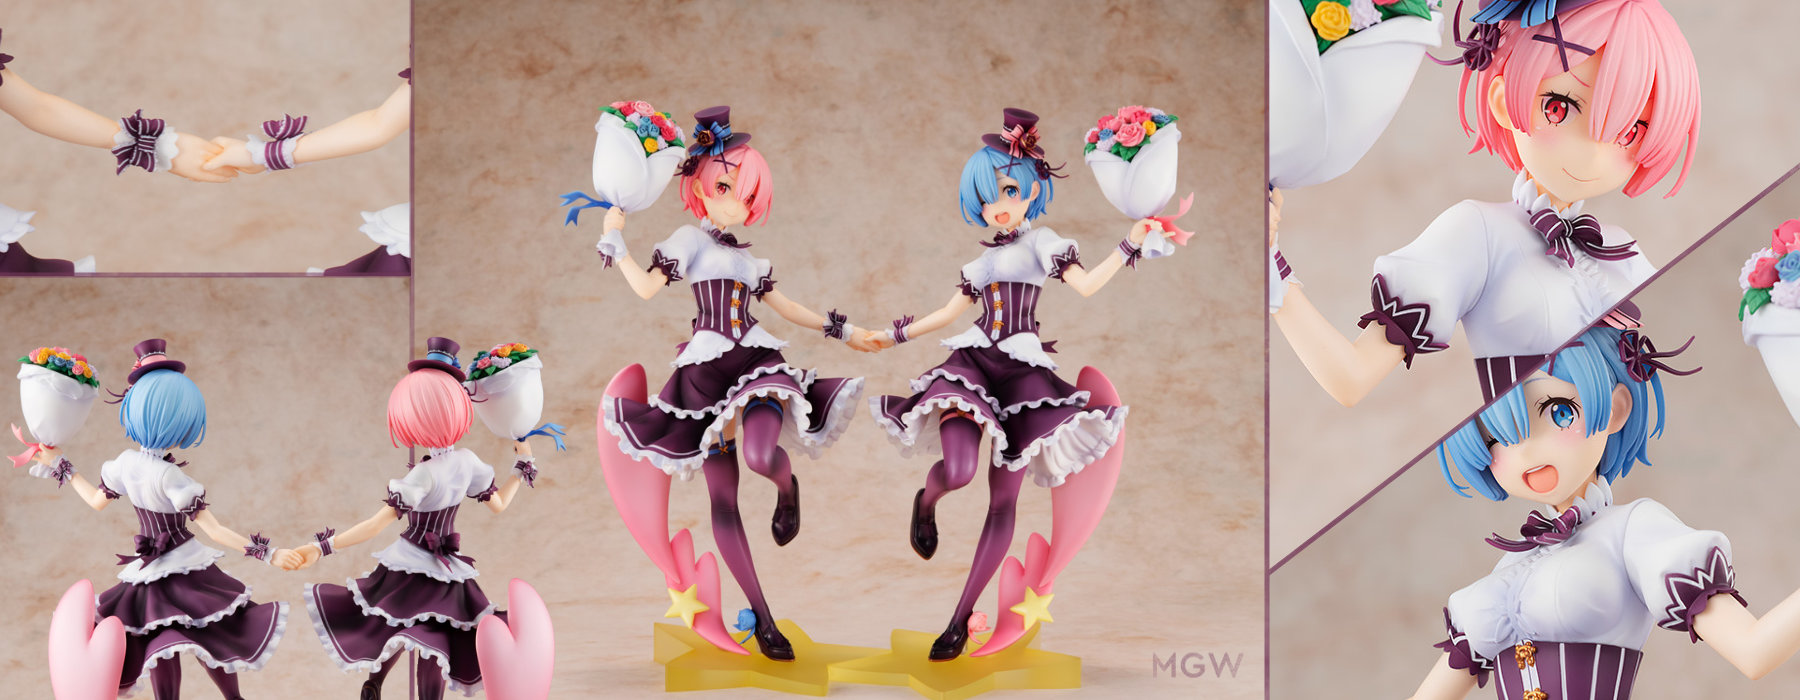 Ram & Rem Birthday Ver. Complete Set by KADOKAWA from Re:ZERO -Starting Life in Another World- MGW Header